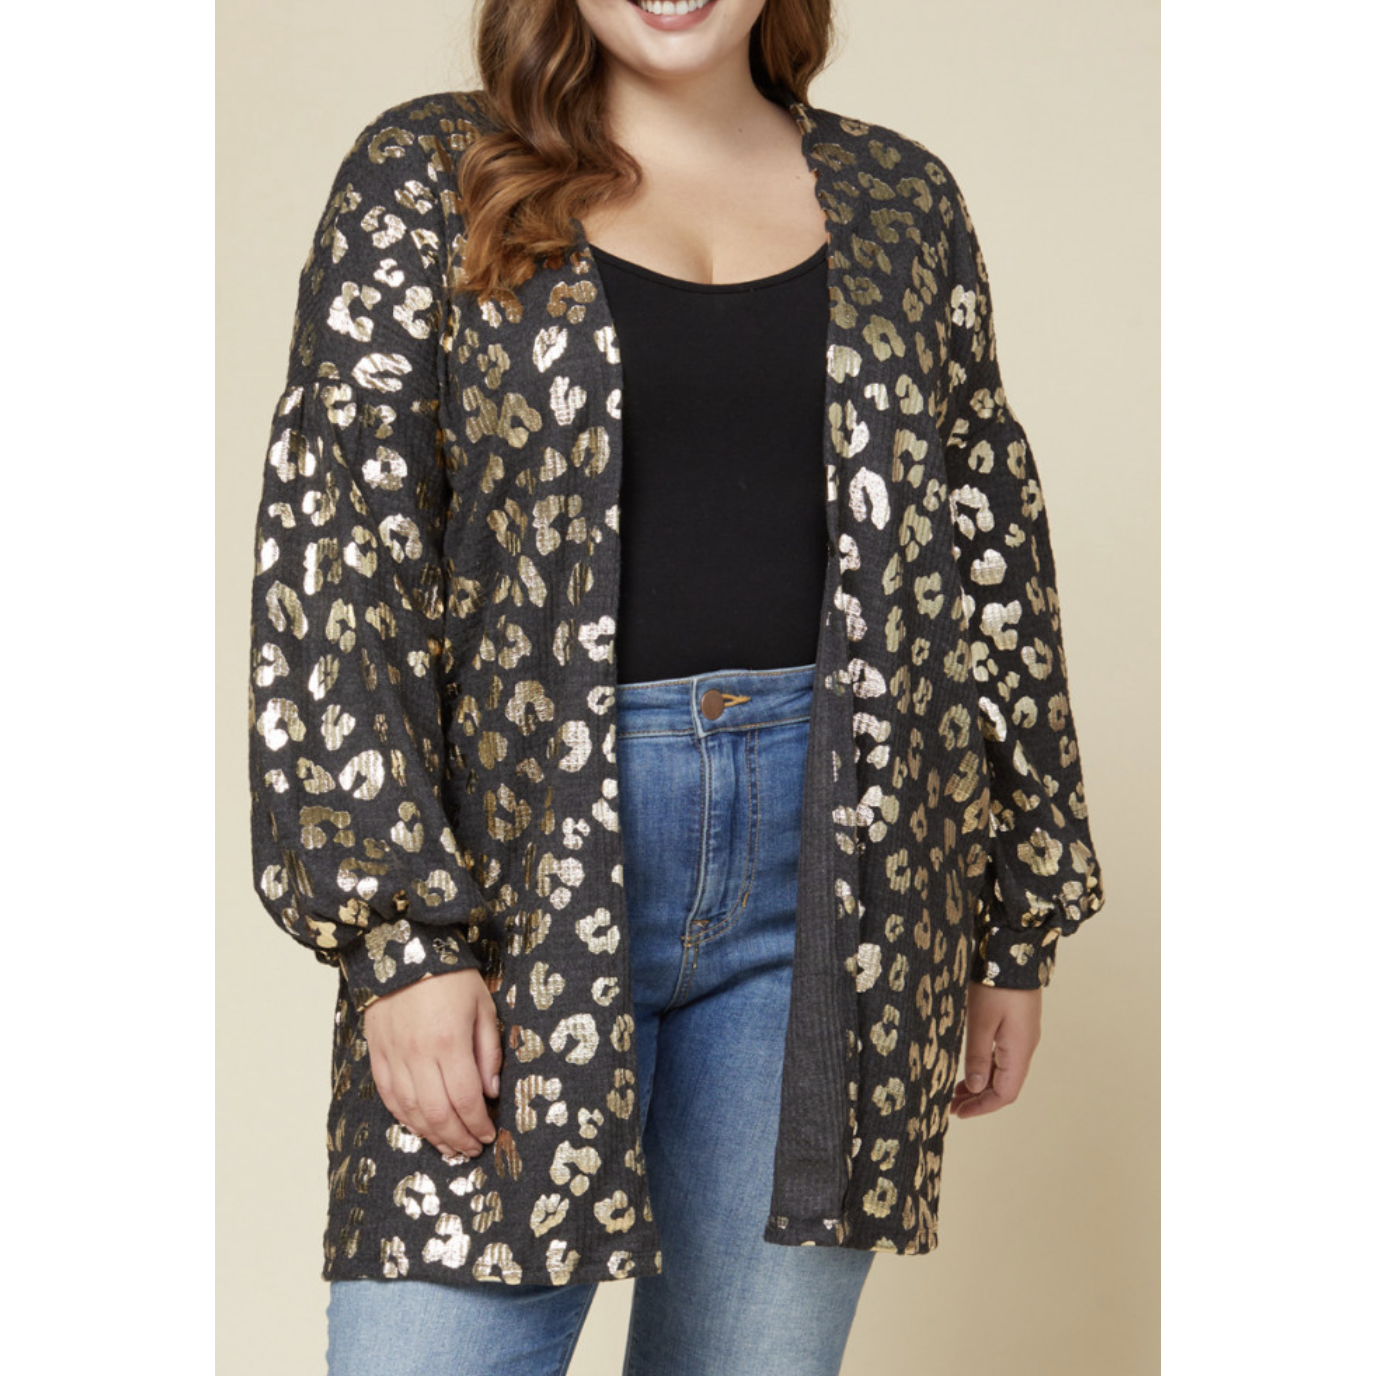 Metallic Cheetah Print Cardigan